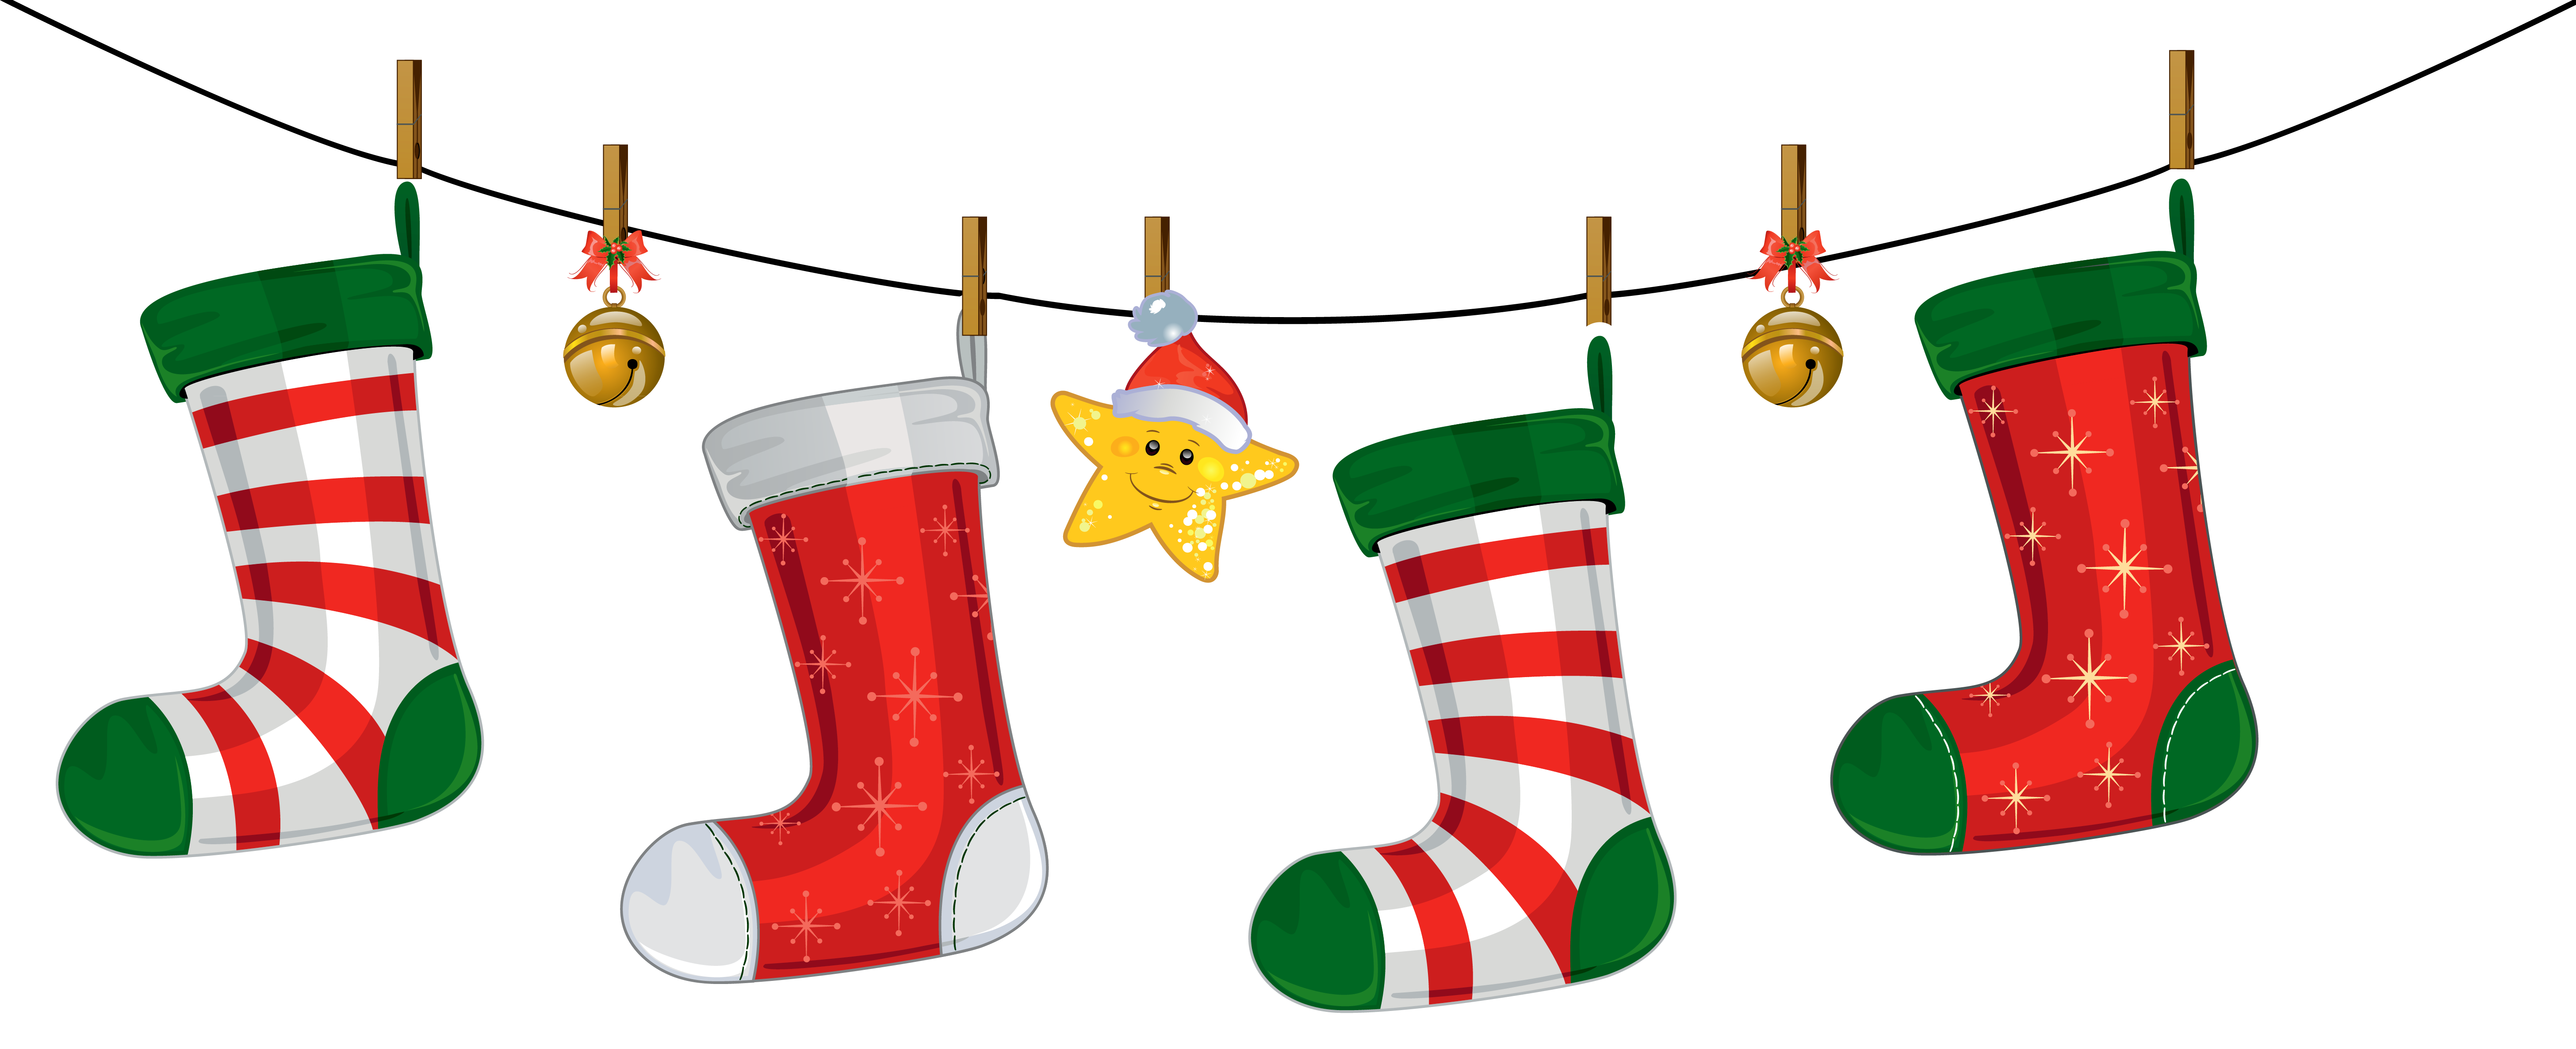 christmas stocking clipart transparent background